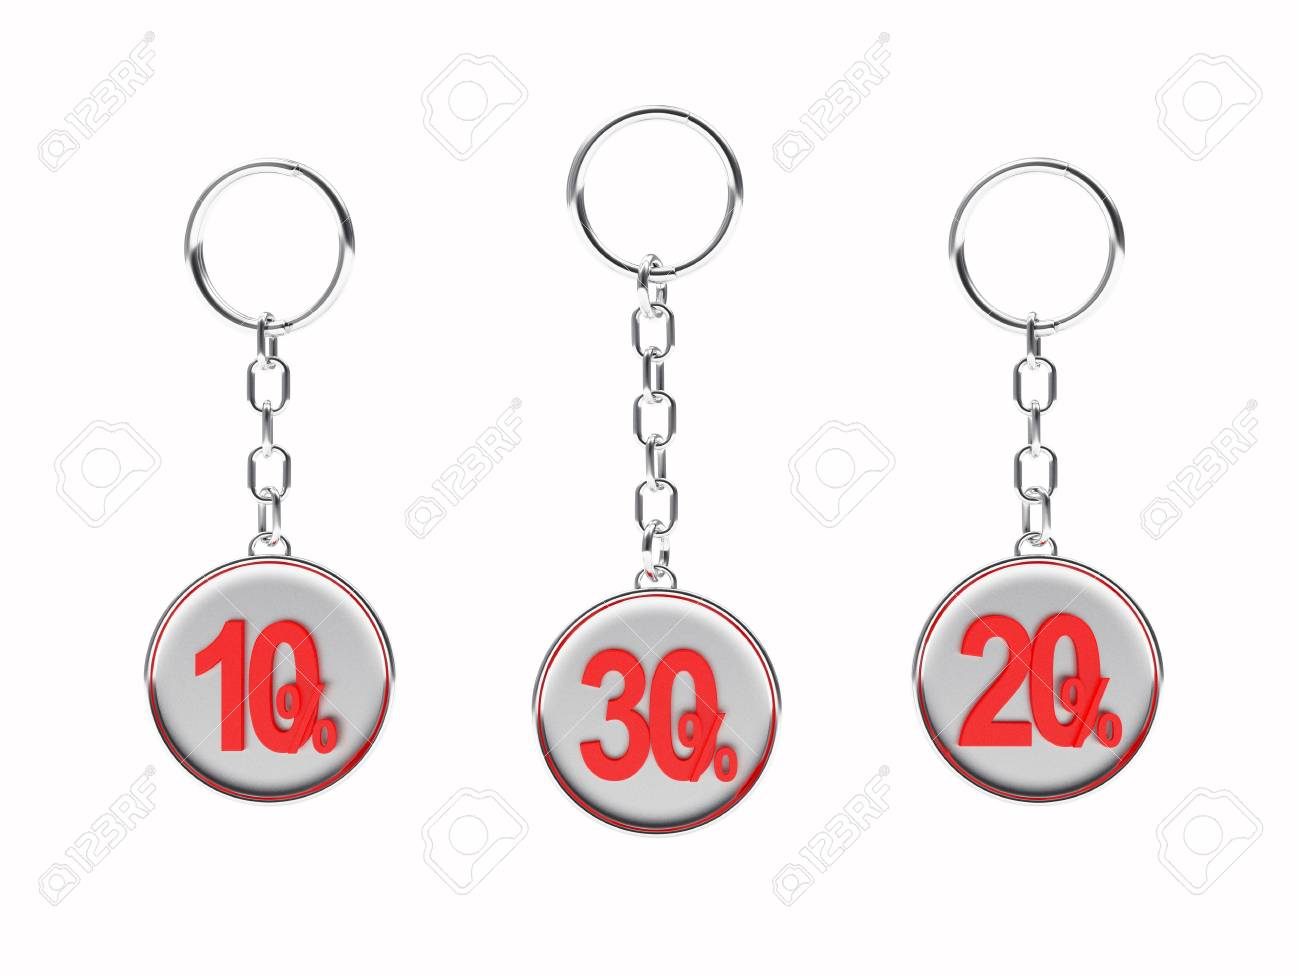 Illustration - Set of silver keychains with red 10 77381fb78bc0